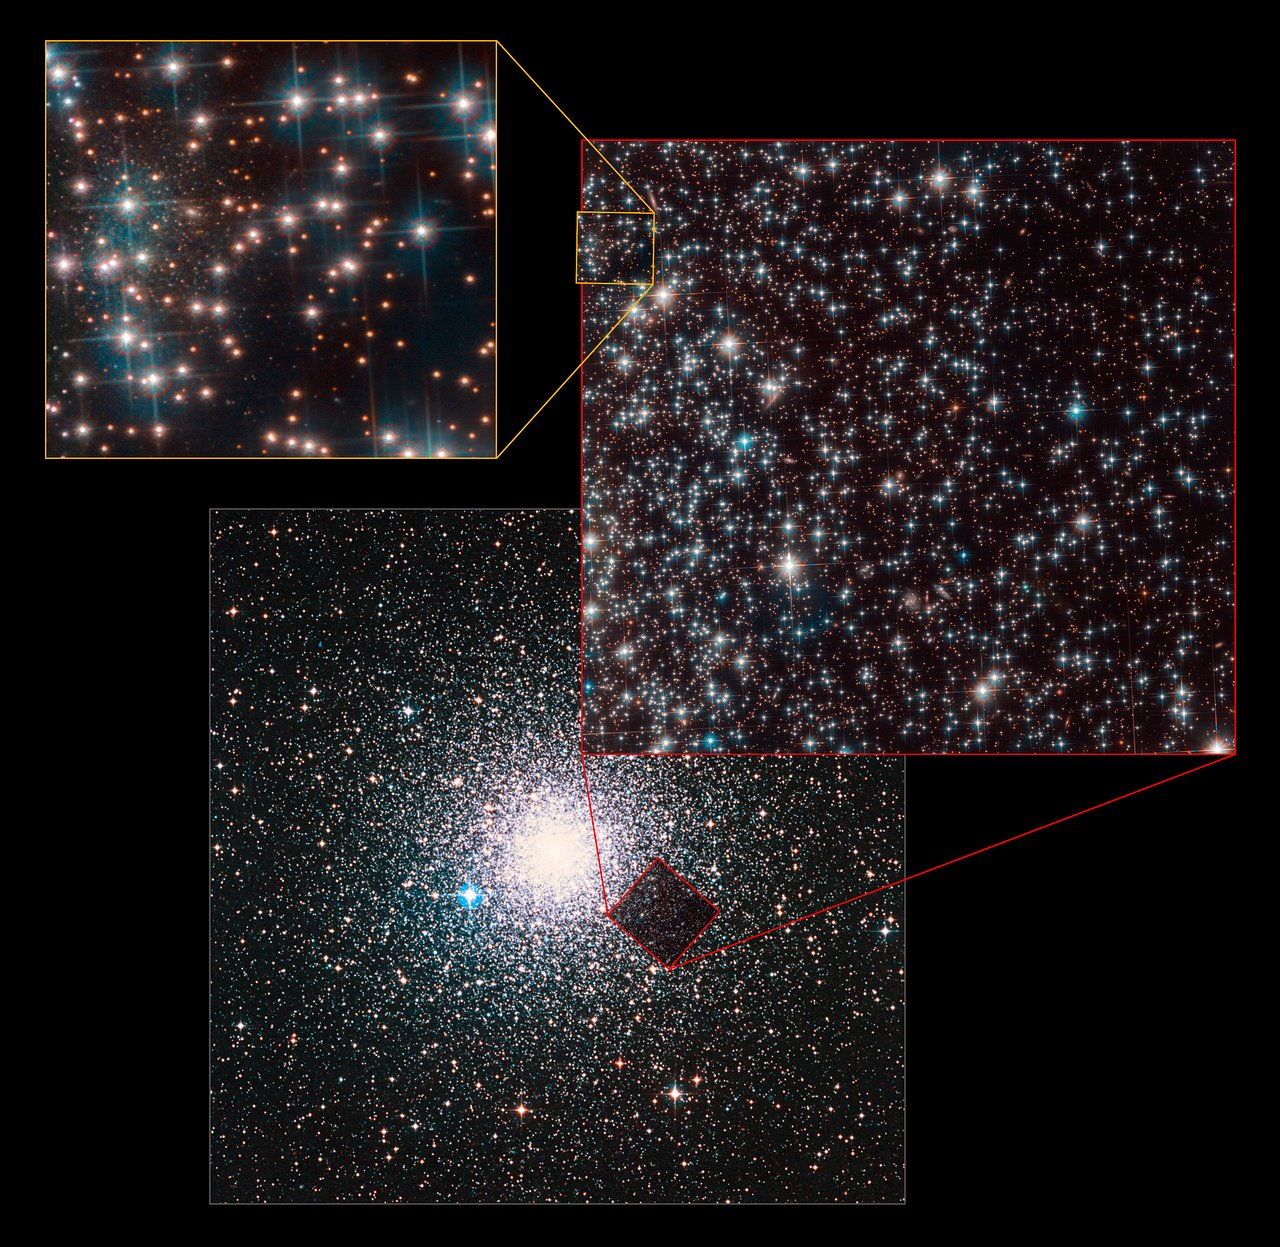 Hubble finds dwarf galaxy in our cosmic neighbourhood